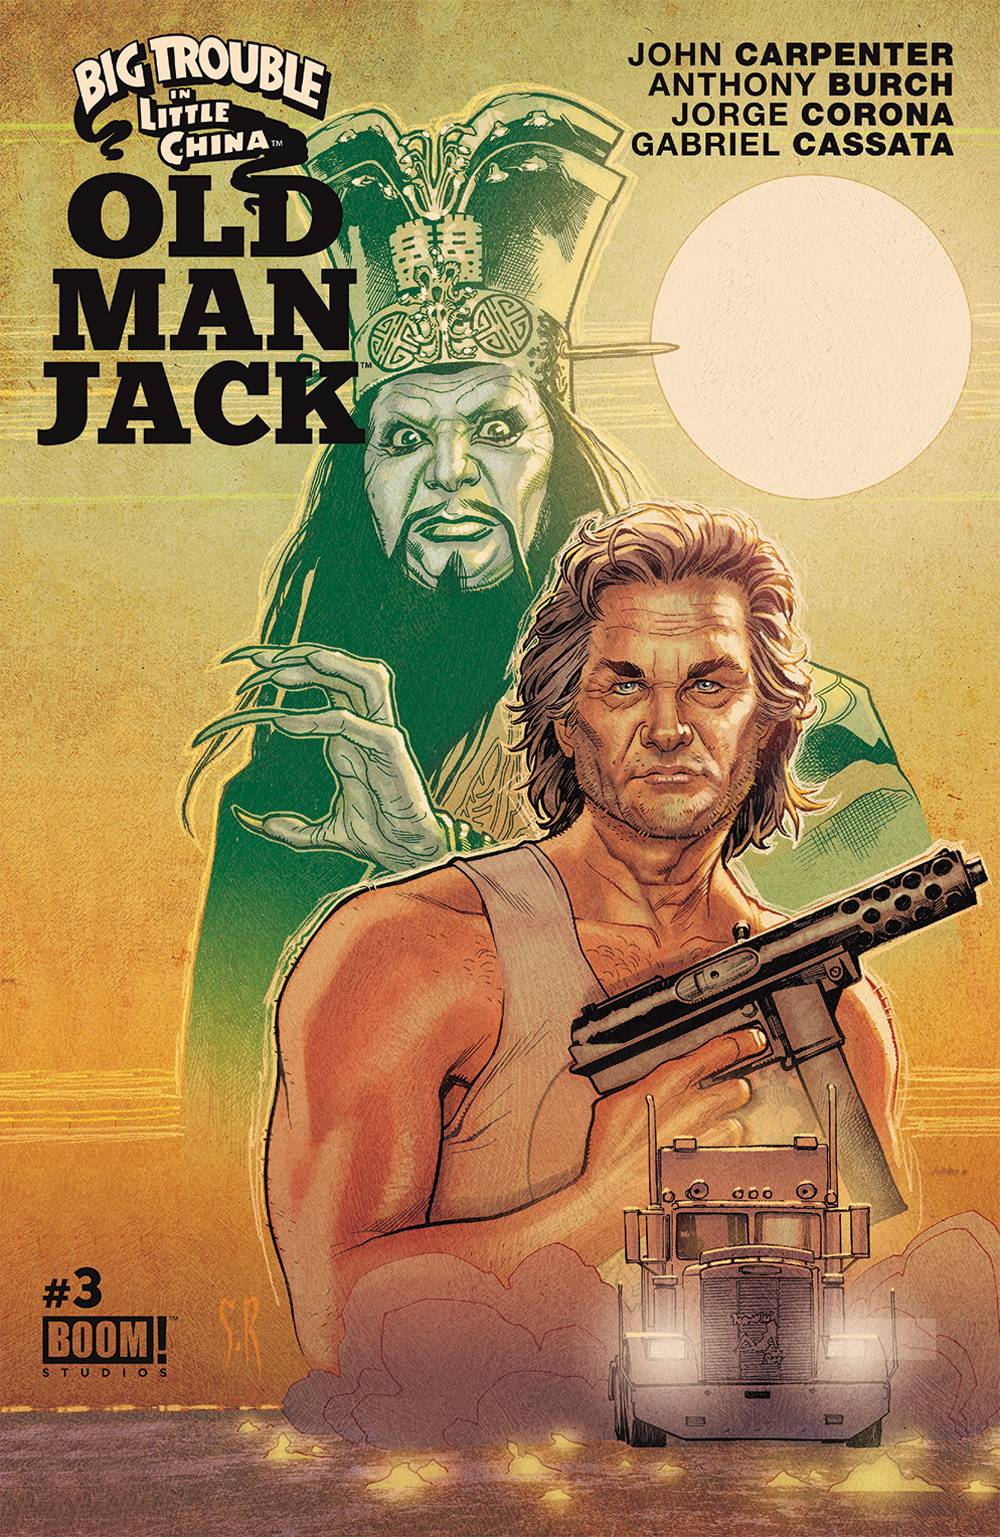 BIG TROUBLE IN LITTLE CHINA OLD MAN JACK 3 MAIN & MIX.jpg